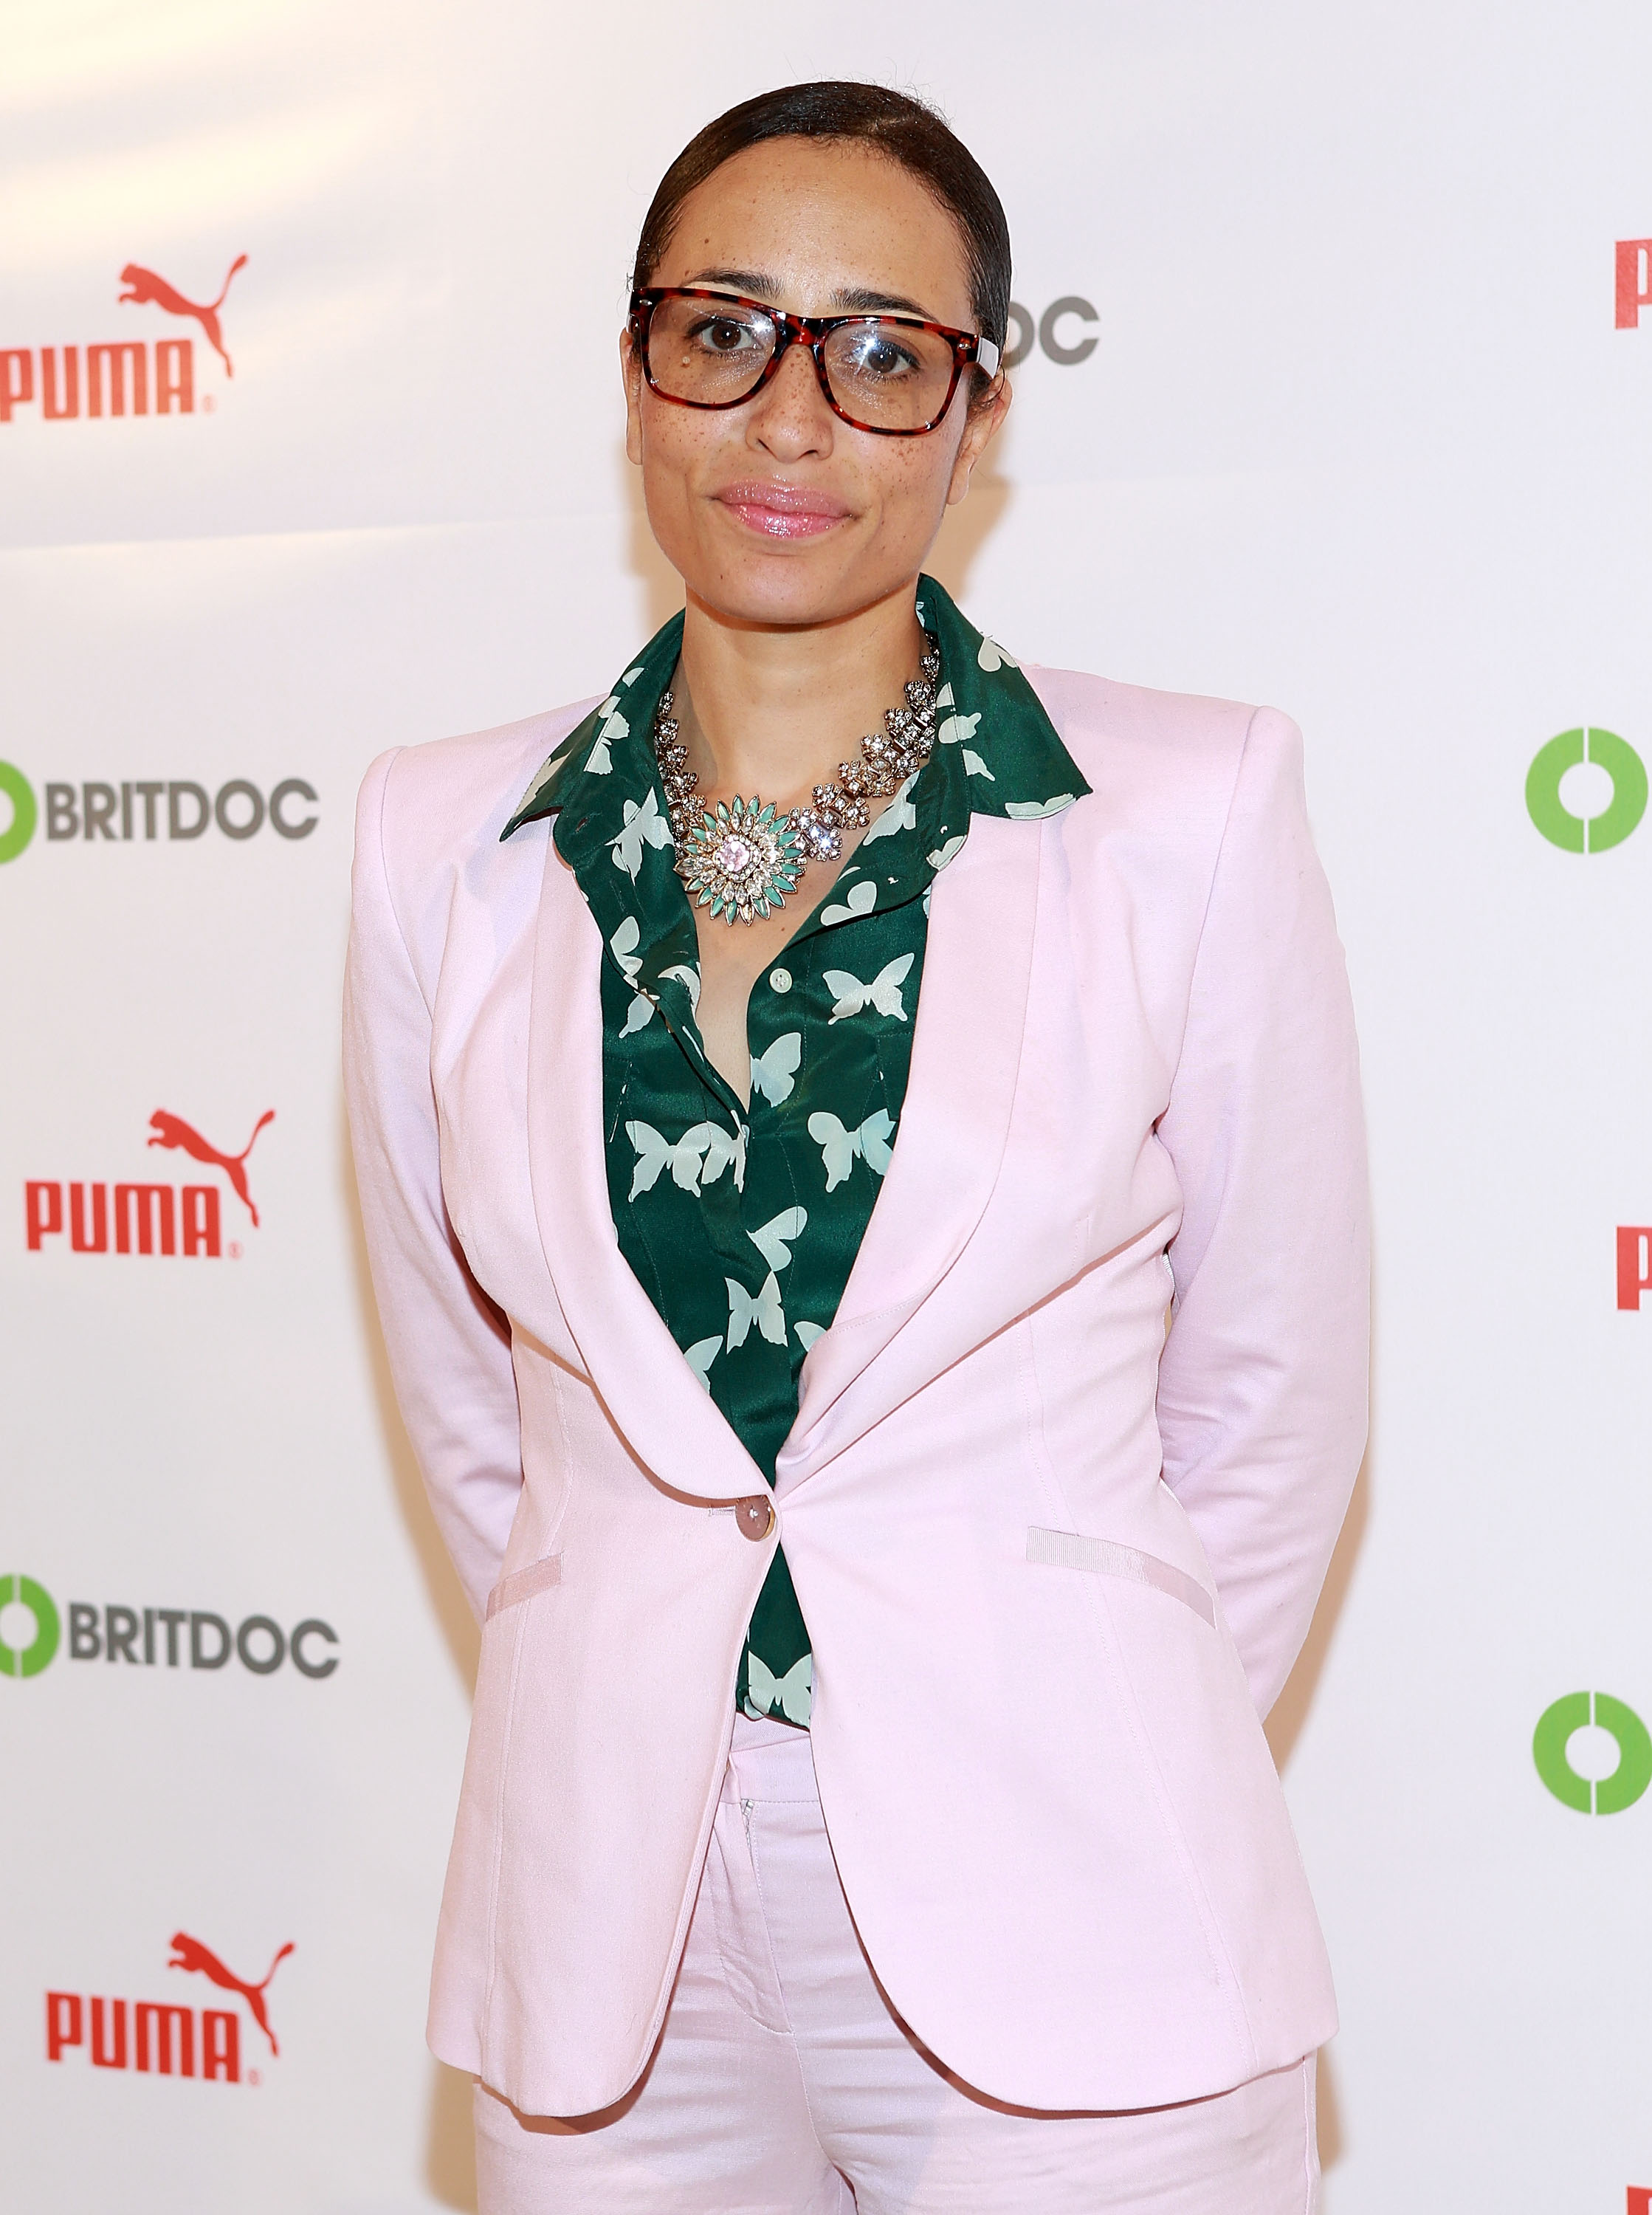 Zadie Smith at Times Center on November 13, 2013 in New York City.